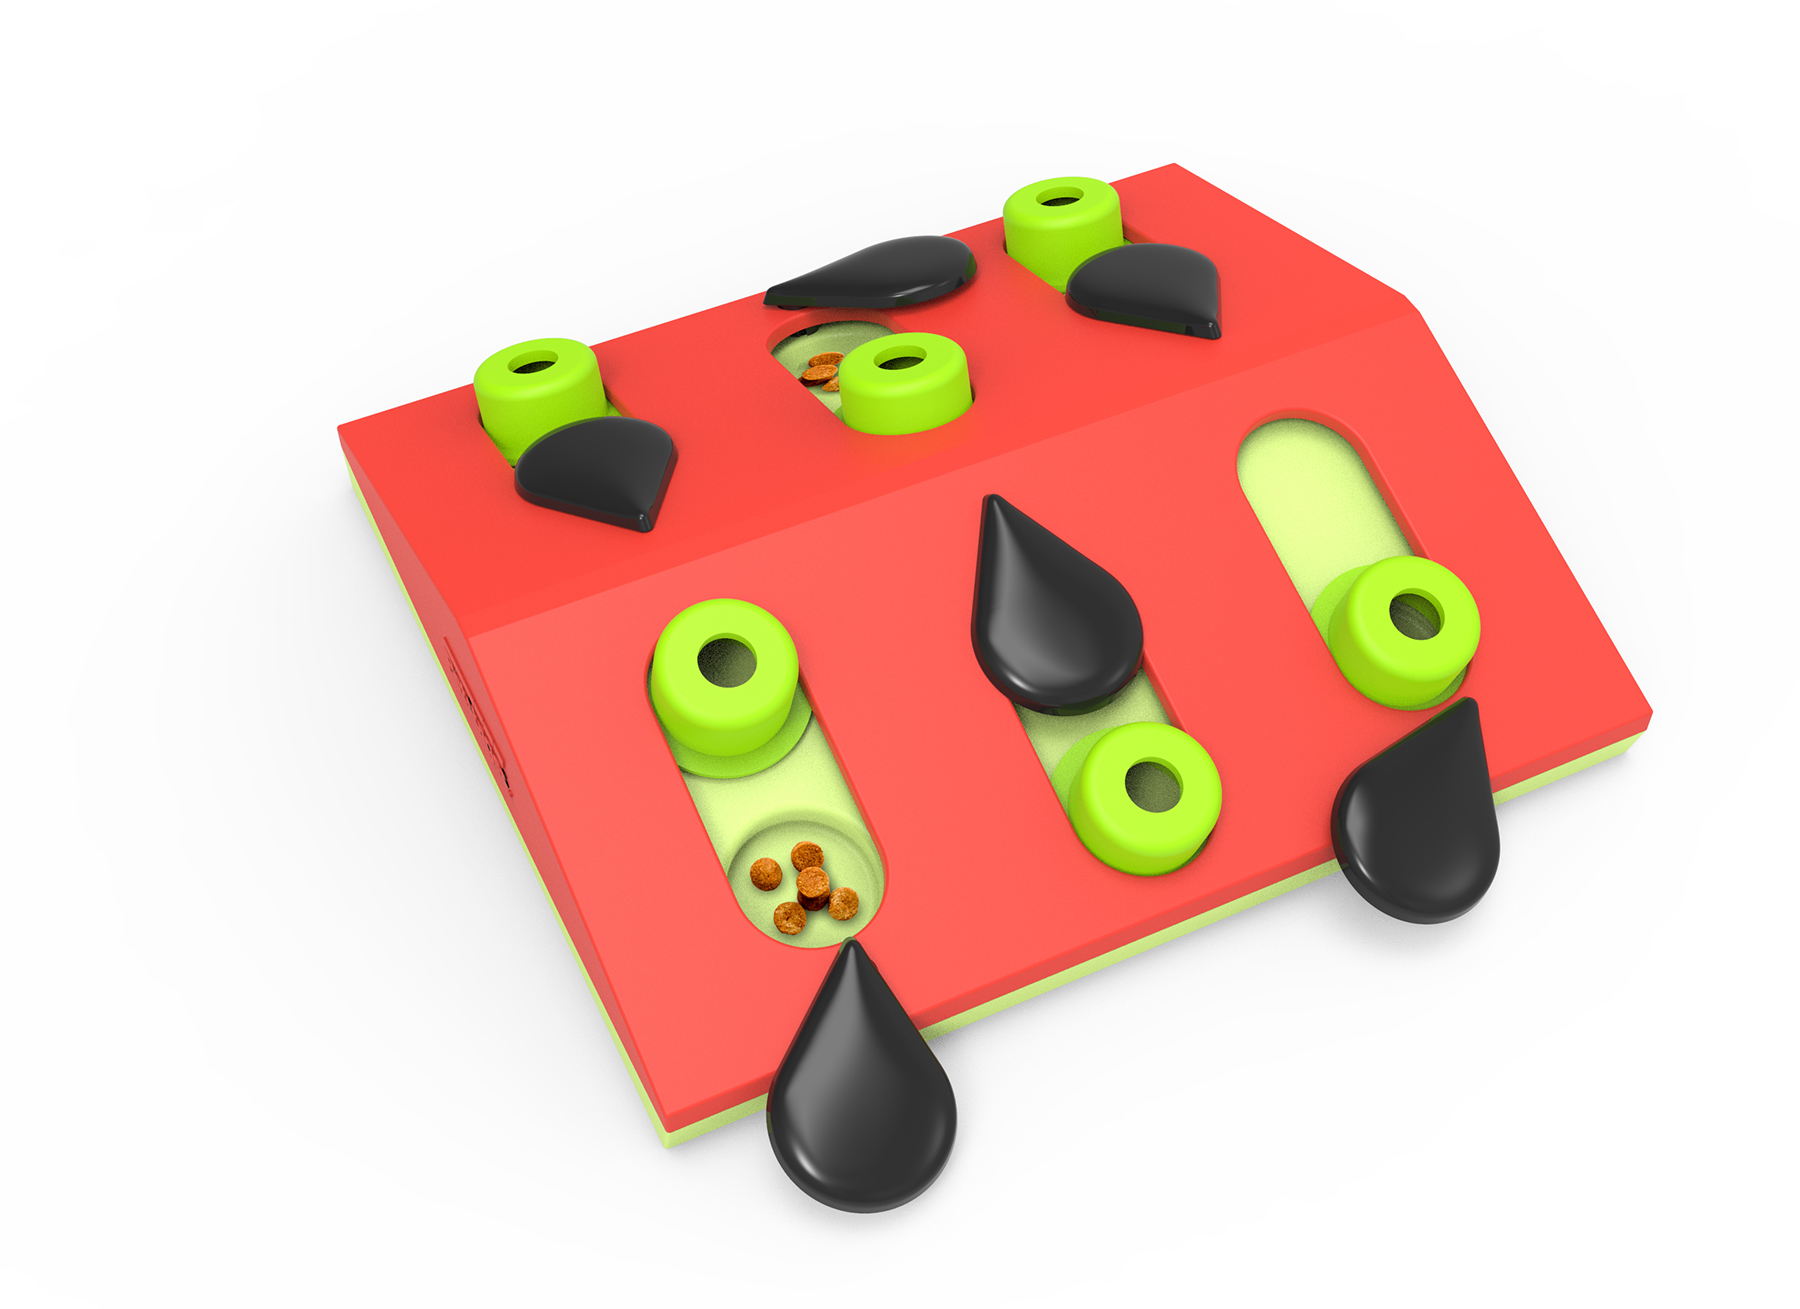 69583 Petstages NinaOttosson PuzzleAndPlay MelonMadness Pnk Main